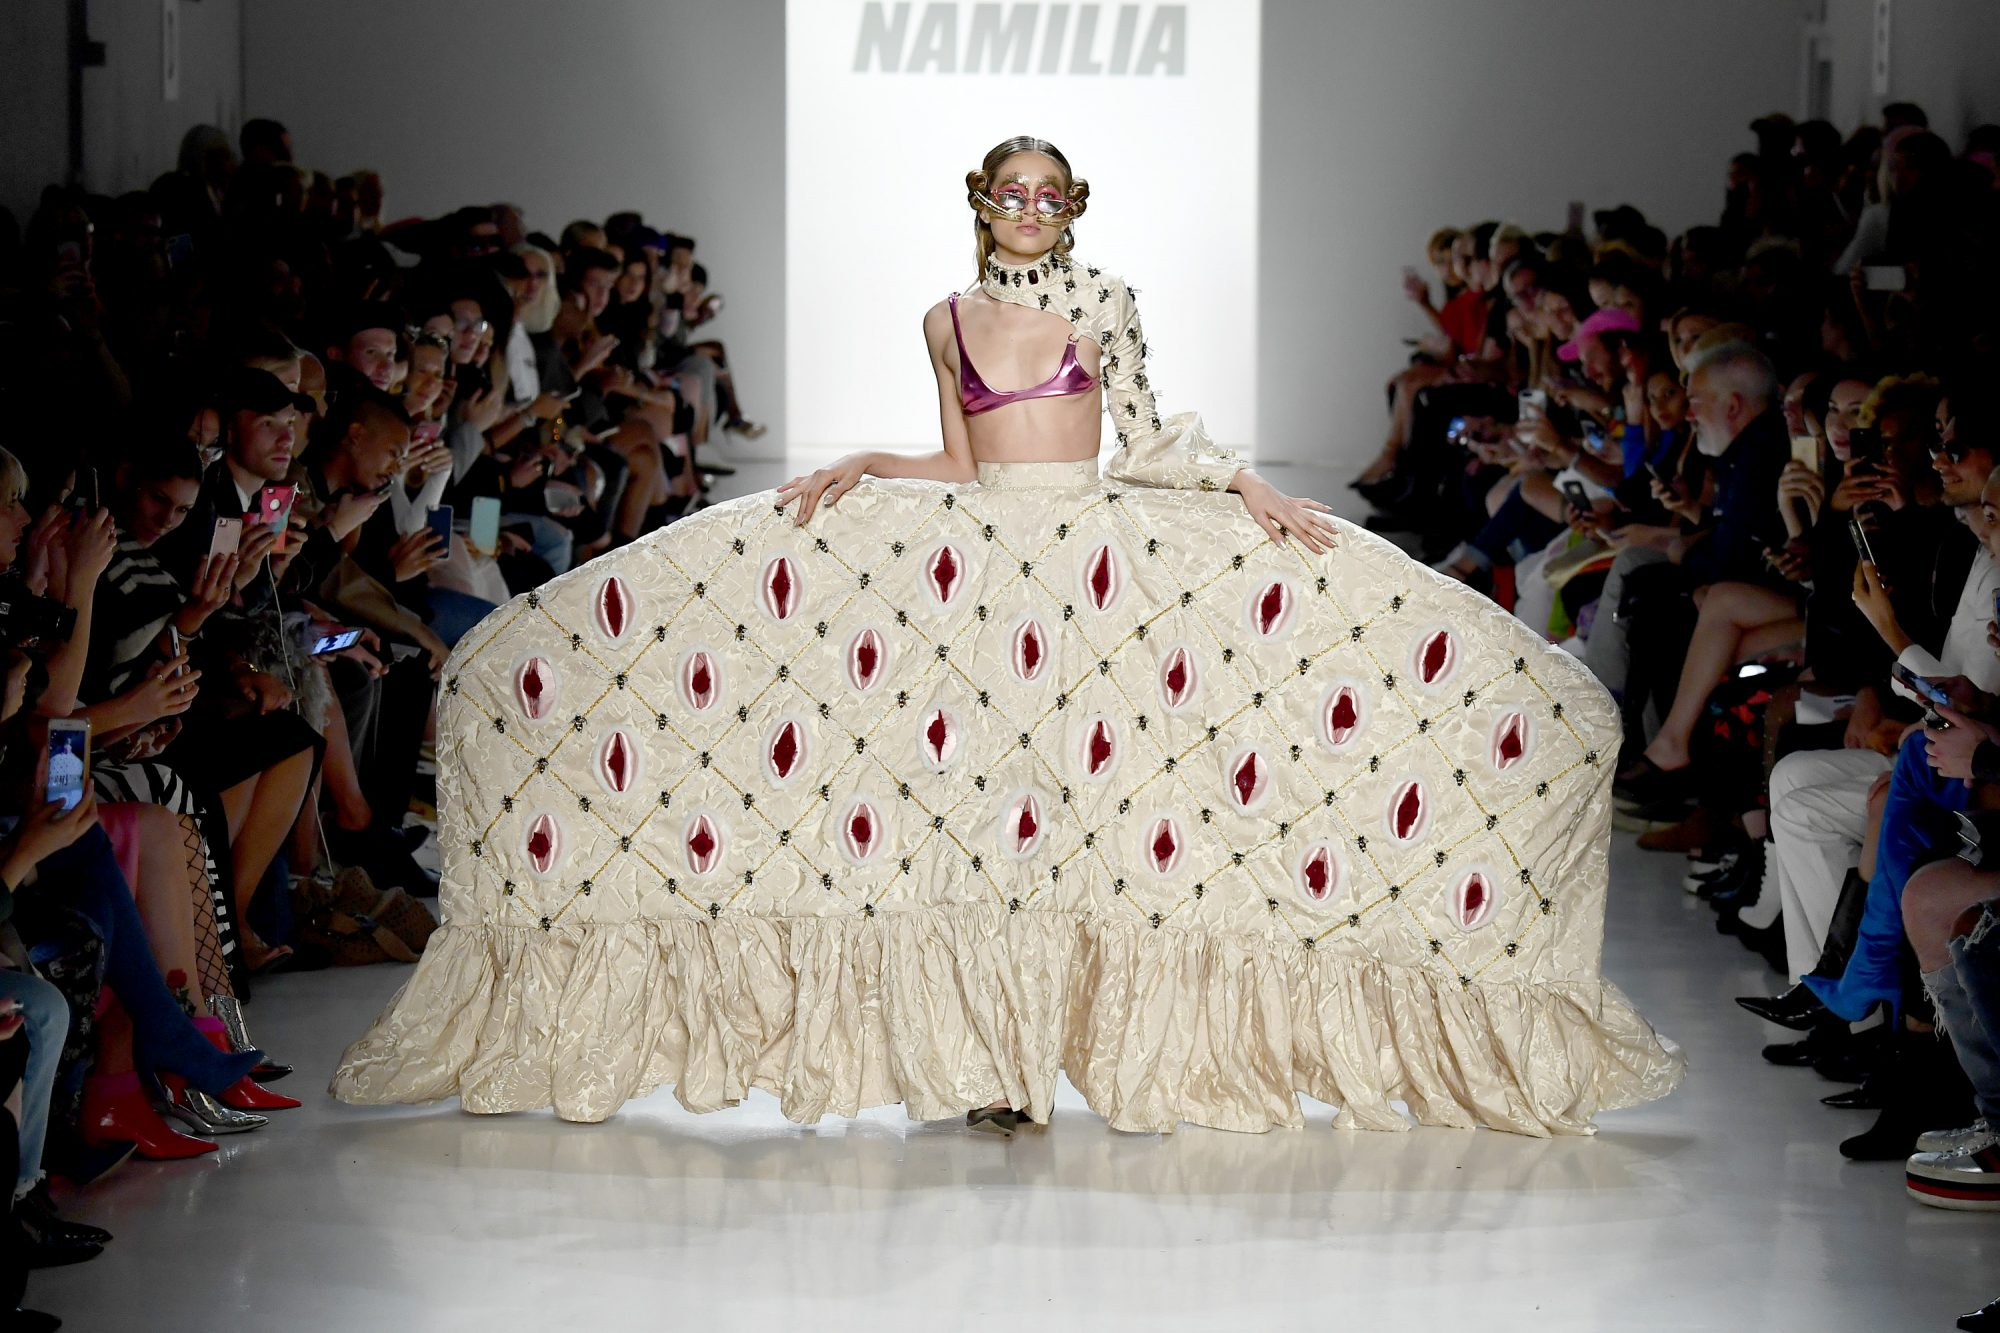 namilia-fashion-show-vagina